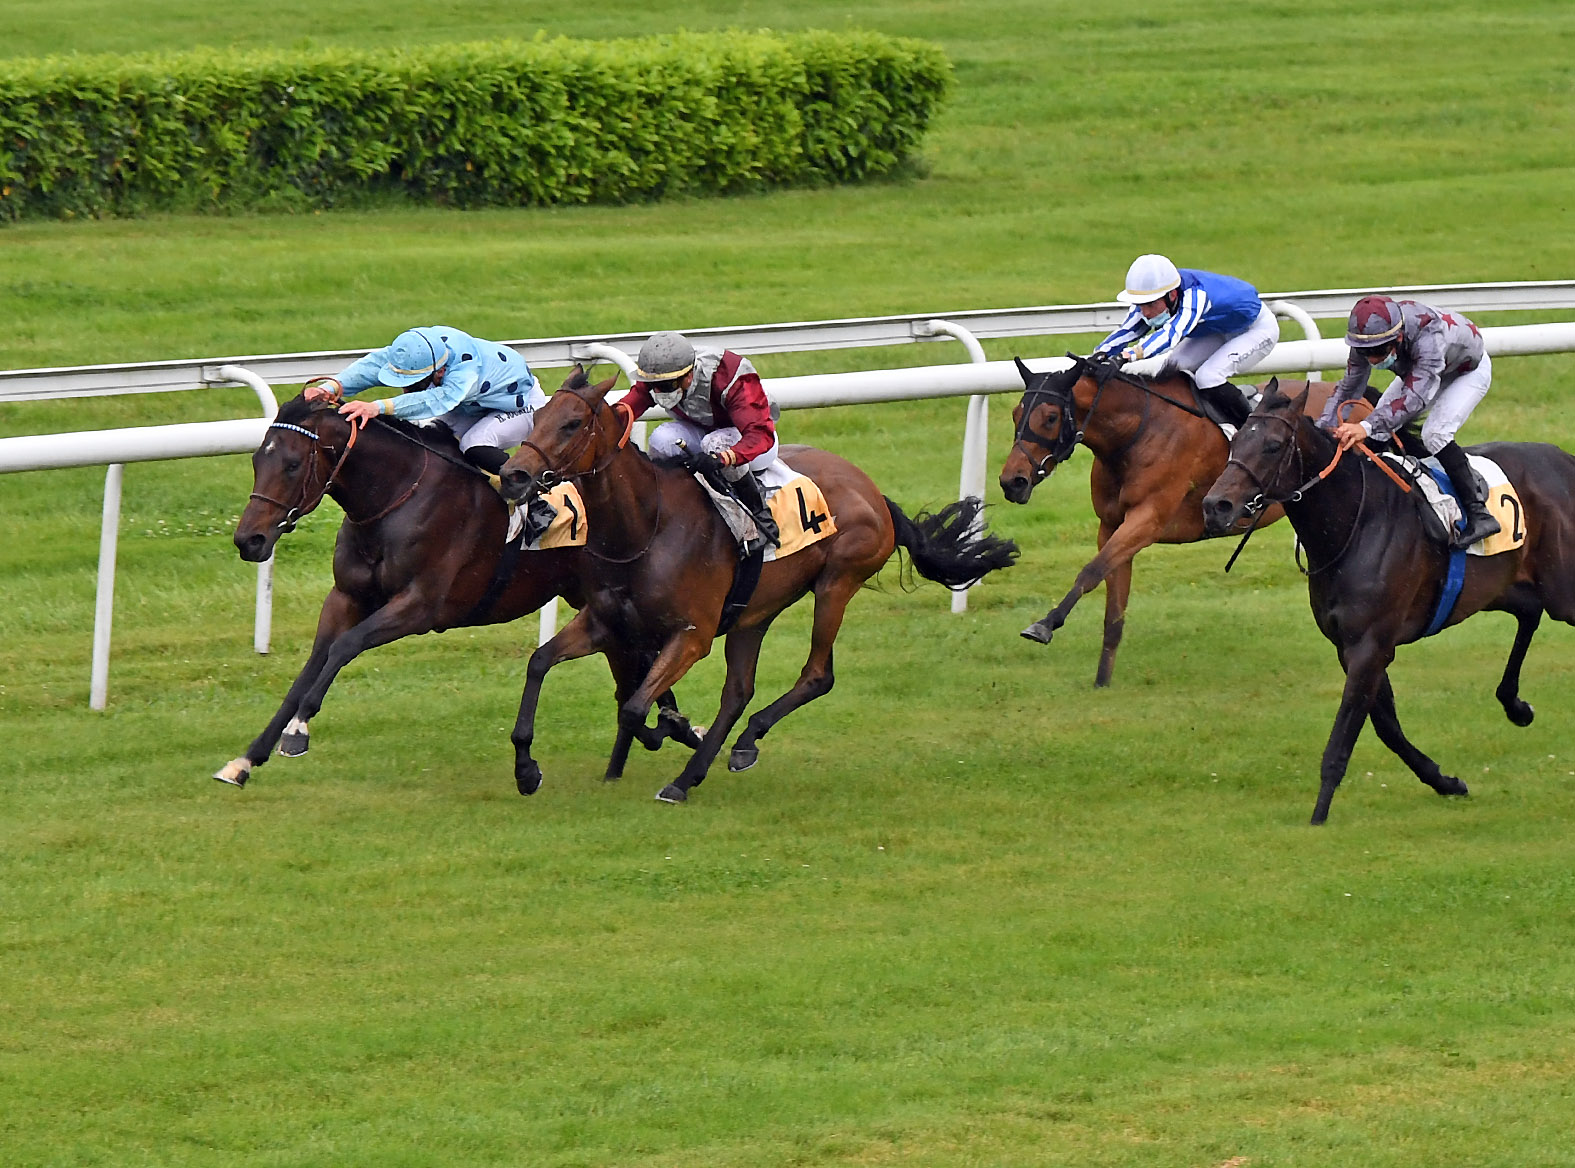 164e Derby du Midi (L) : Fantastic Spirit gagne son ticket pour le Jockey Club